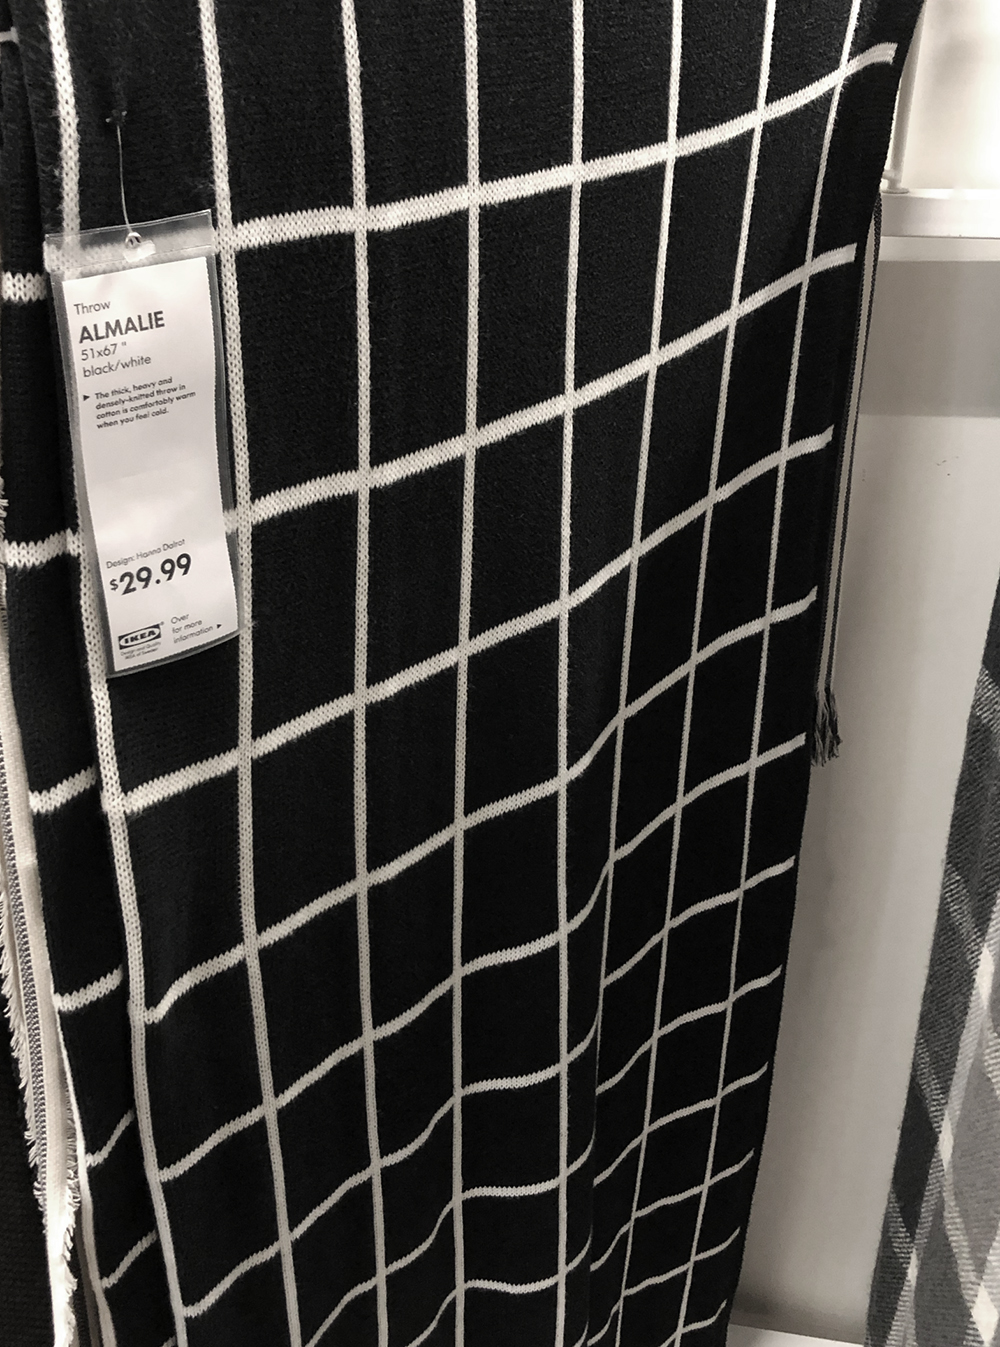 5 Ikea Items That Caught My Eye - roomfortuesday.com